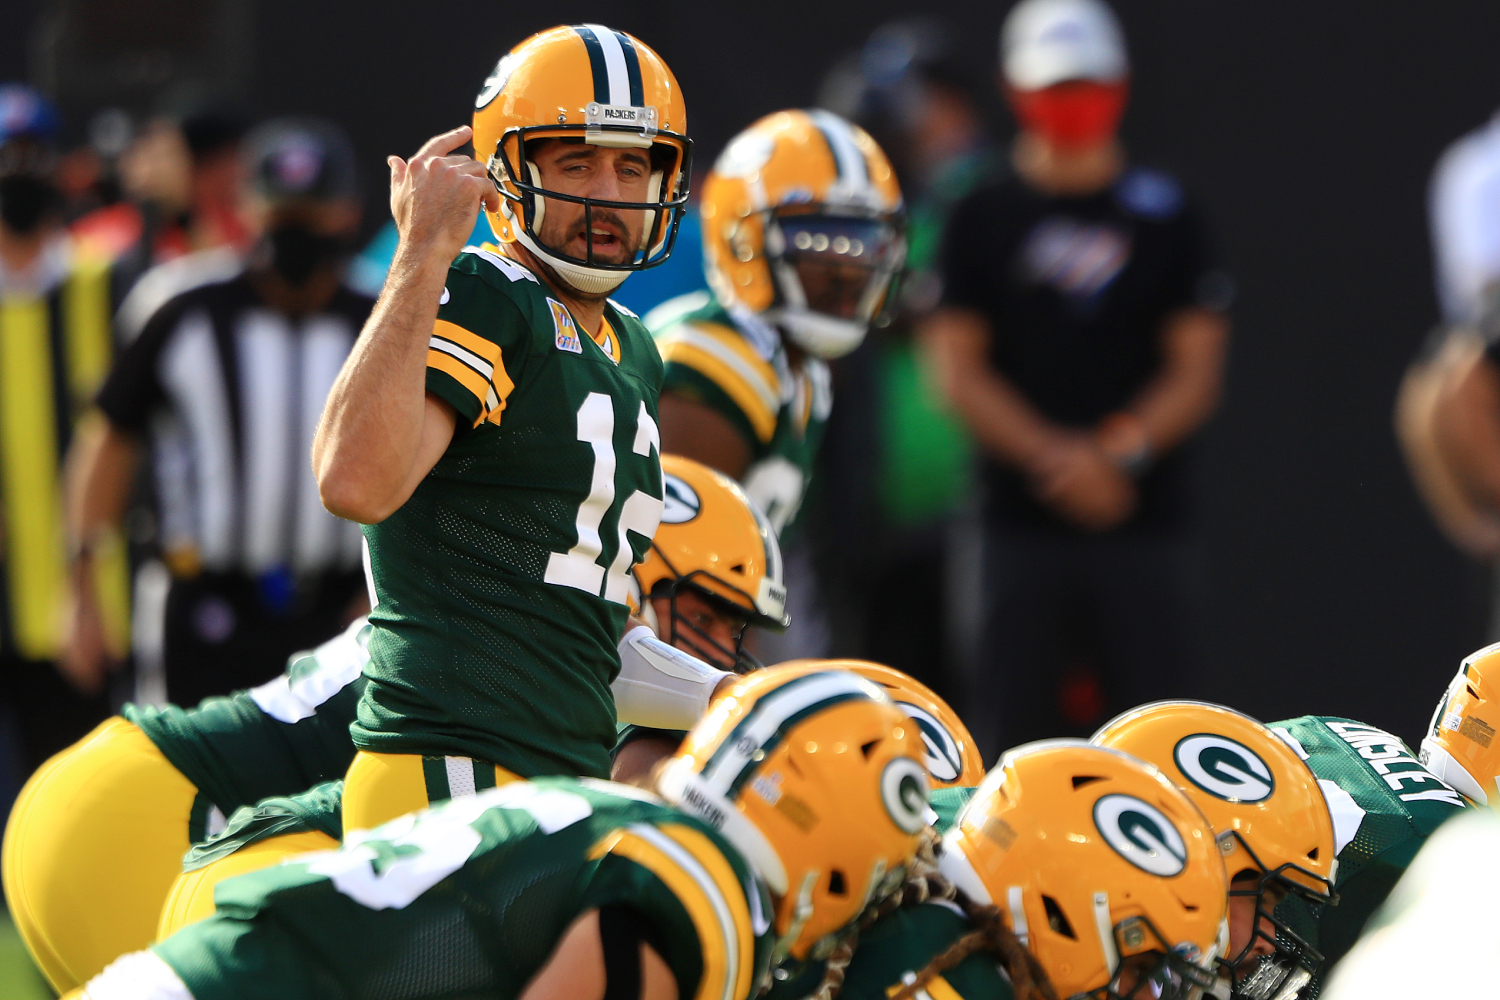 Aaron Rodgers and Ndamukong Suh have a heated rivalry that goes way back. Rodgers recently discussed it, as well as their trash talk.